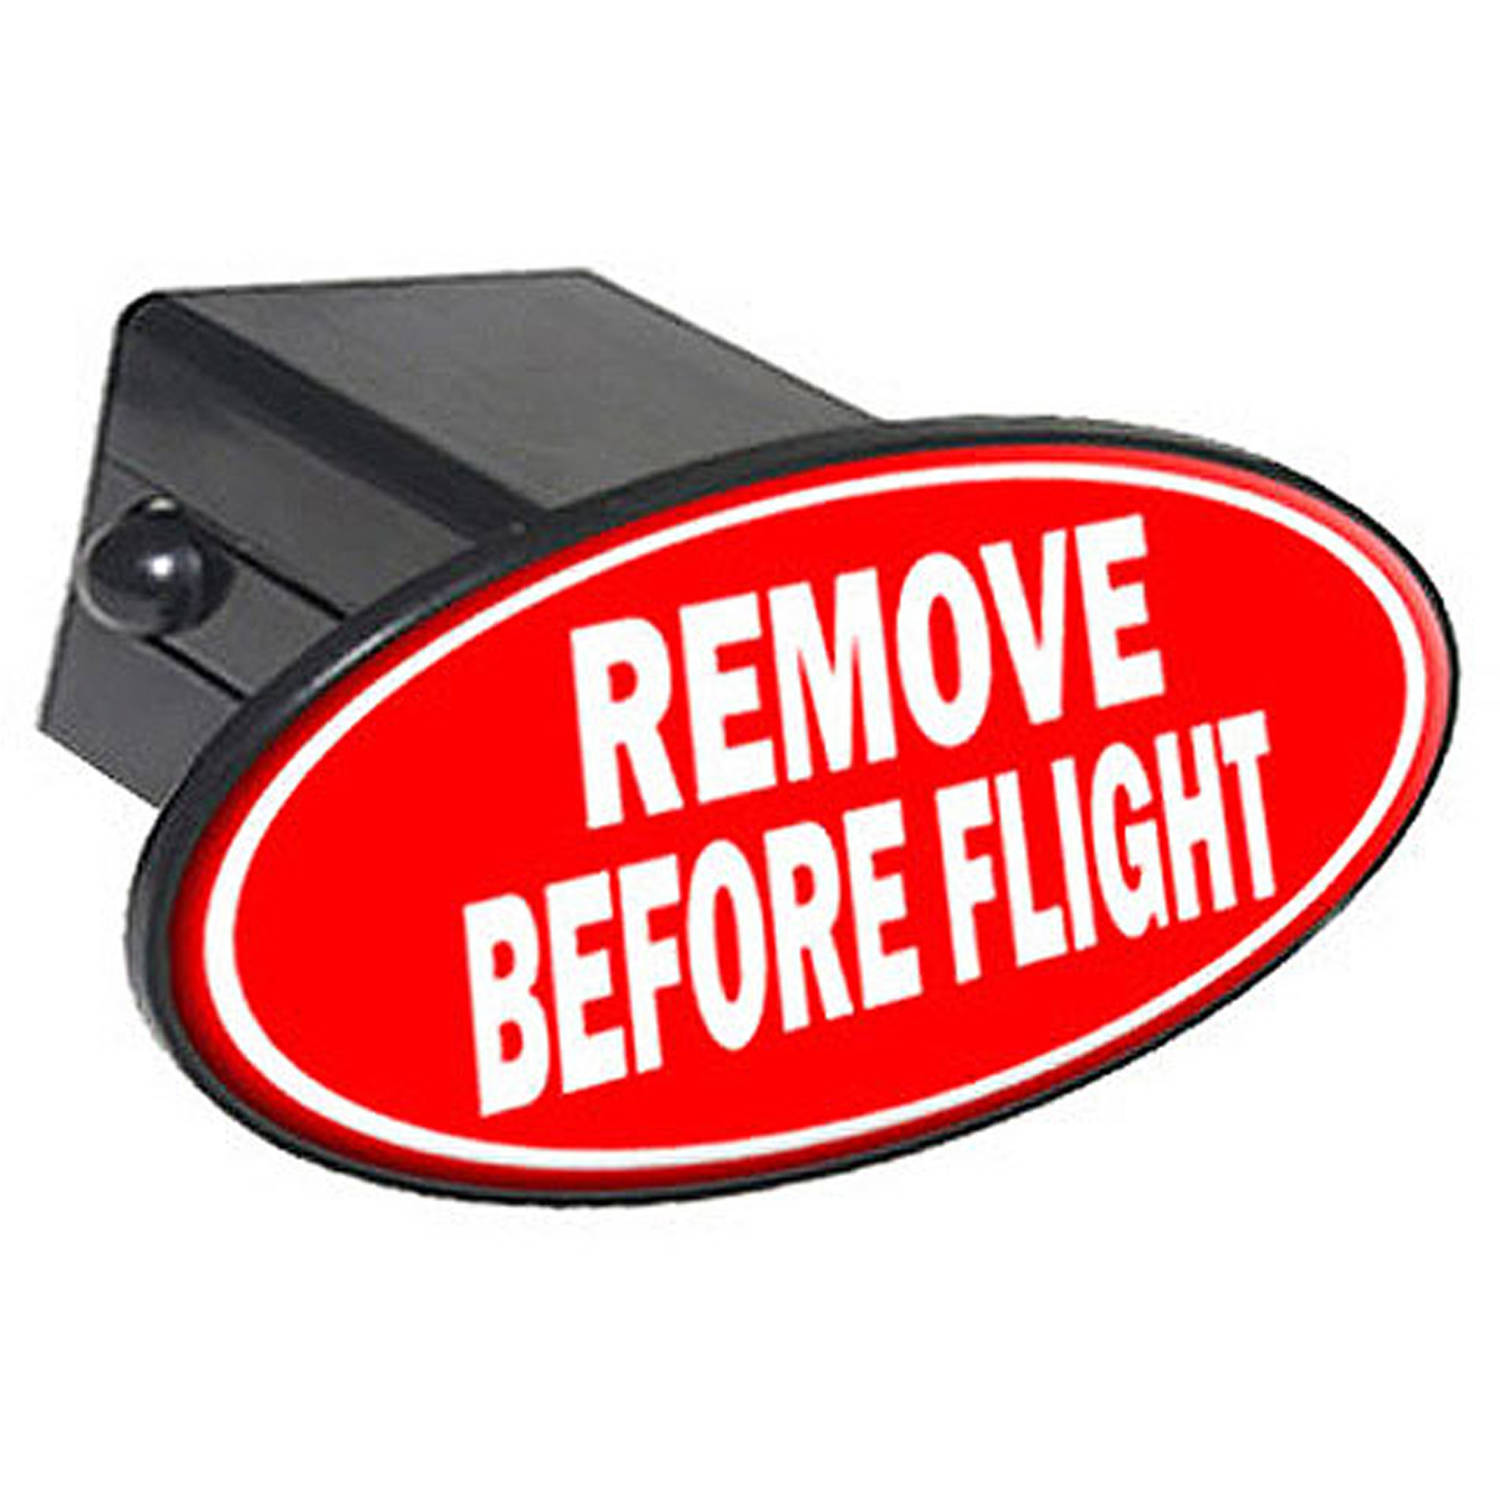 """Remove Before Flight 2"""" Oval Tow Trailer Hitch Cover Plug Insert"""